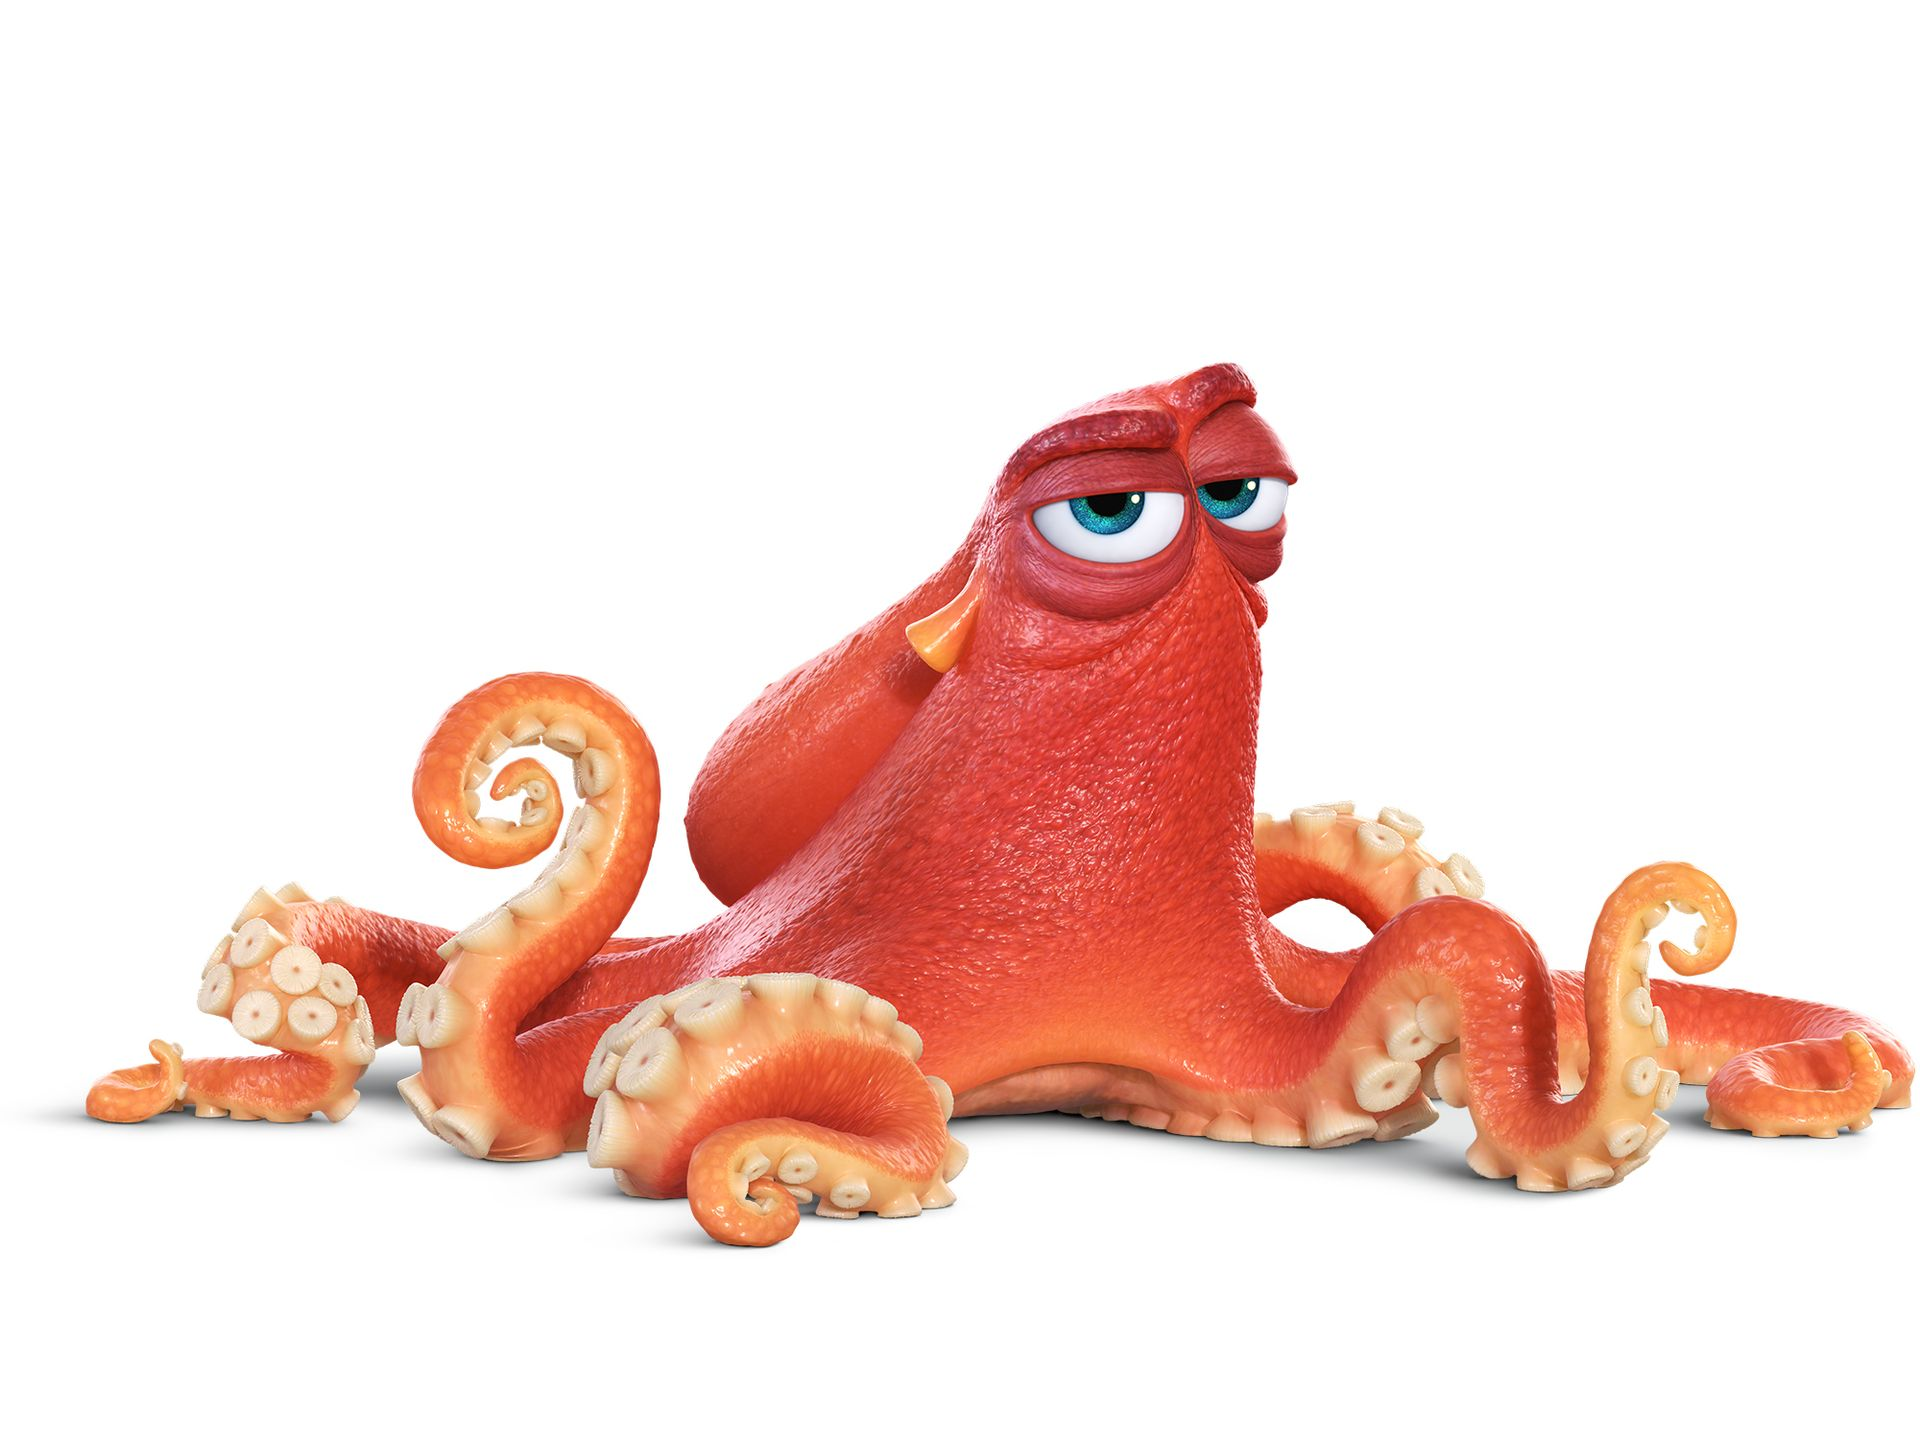 Hank finding dory clipart » Clipart Station.